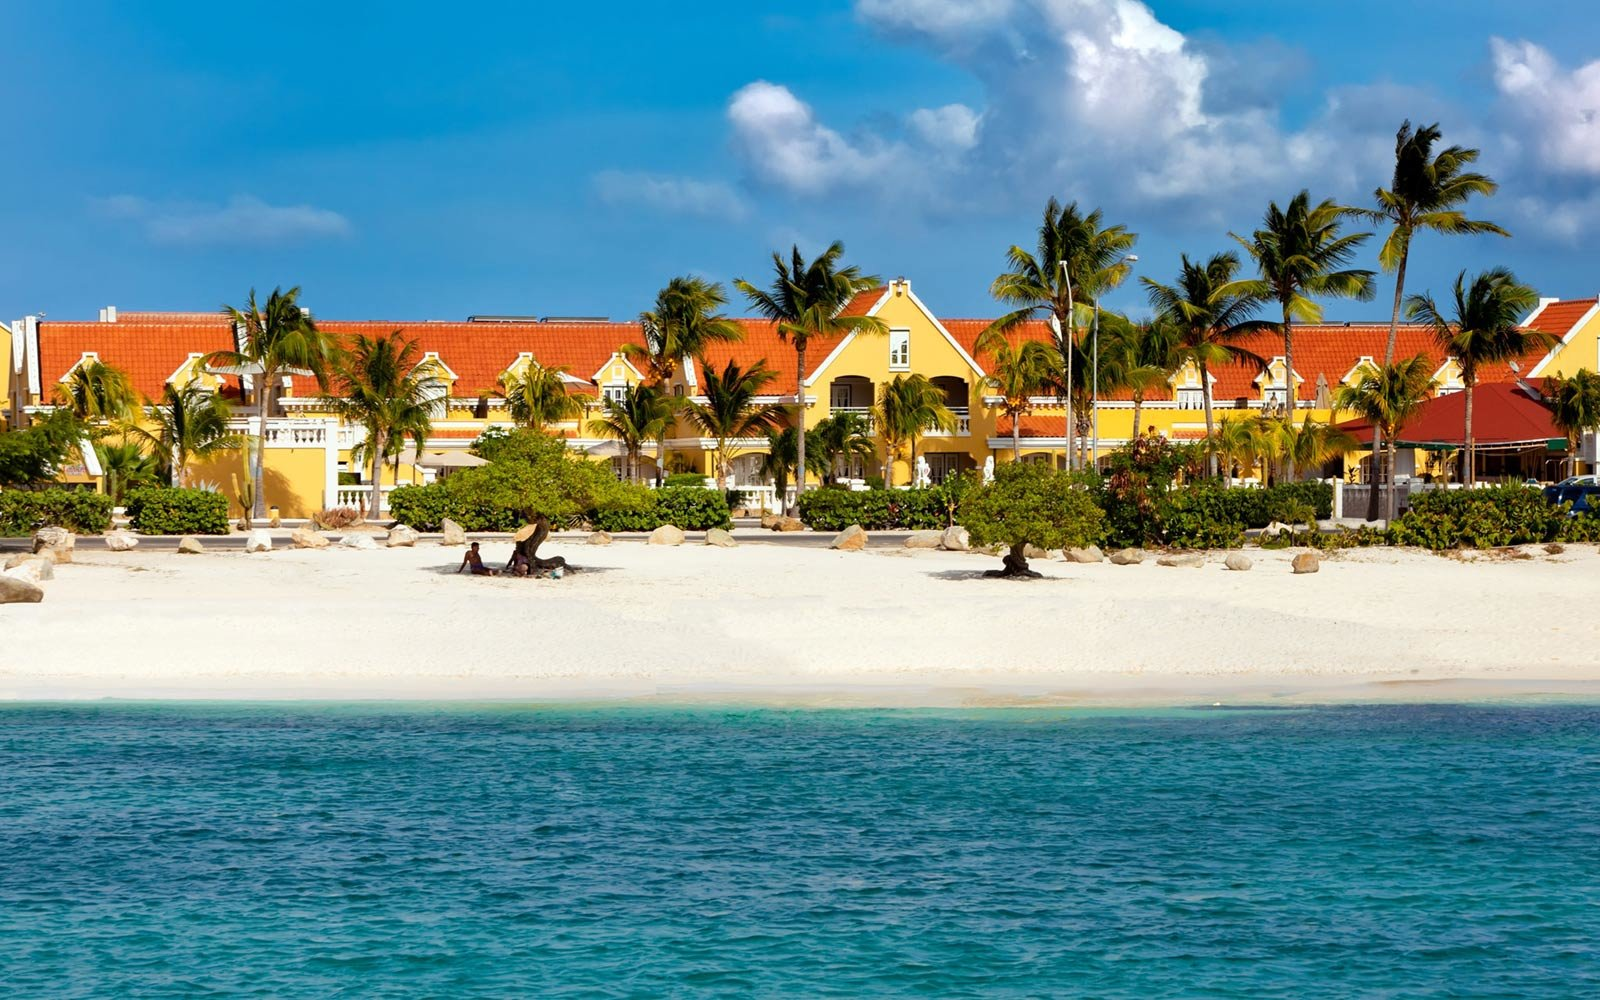 Best Hotel To Stay In Aruba